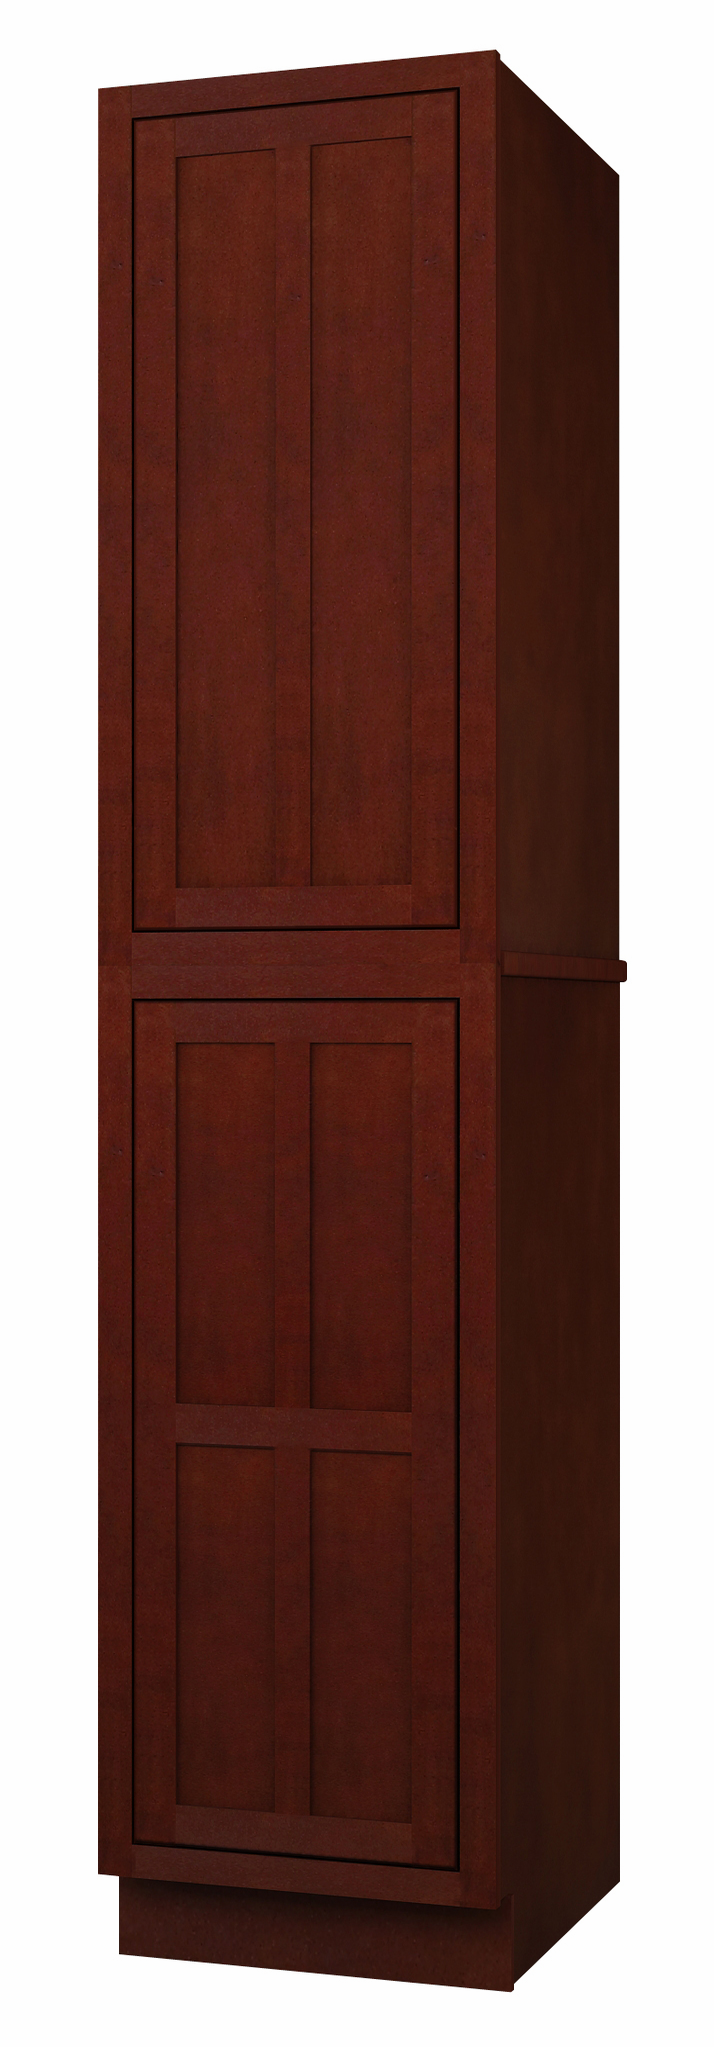 Sunny Wood Productsgrand Havenghp1884 Pantry Cabinets